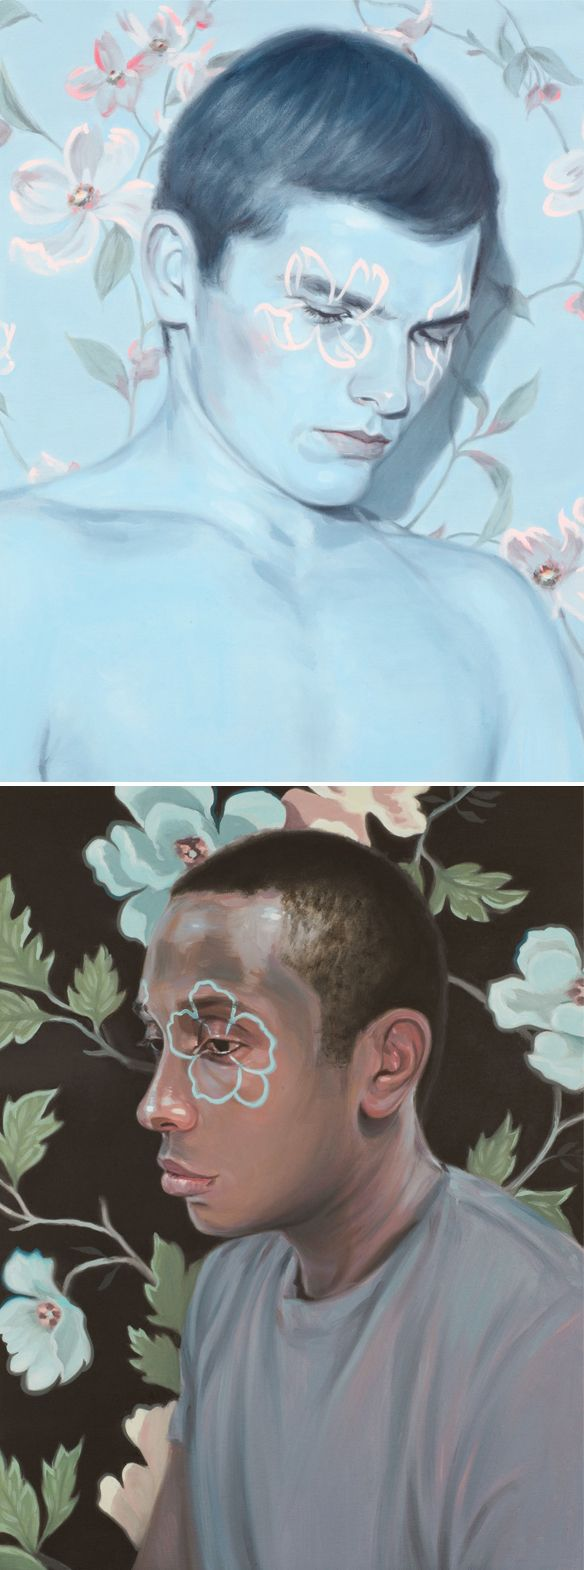 new paintings by kris knight